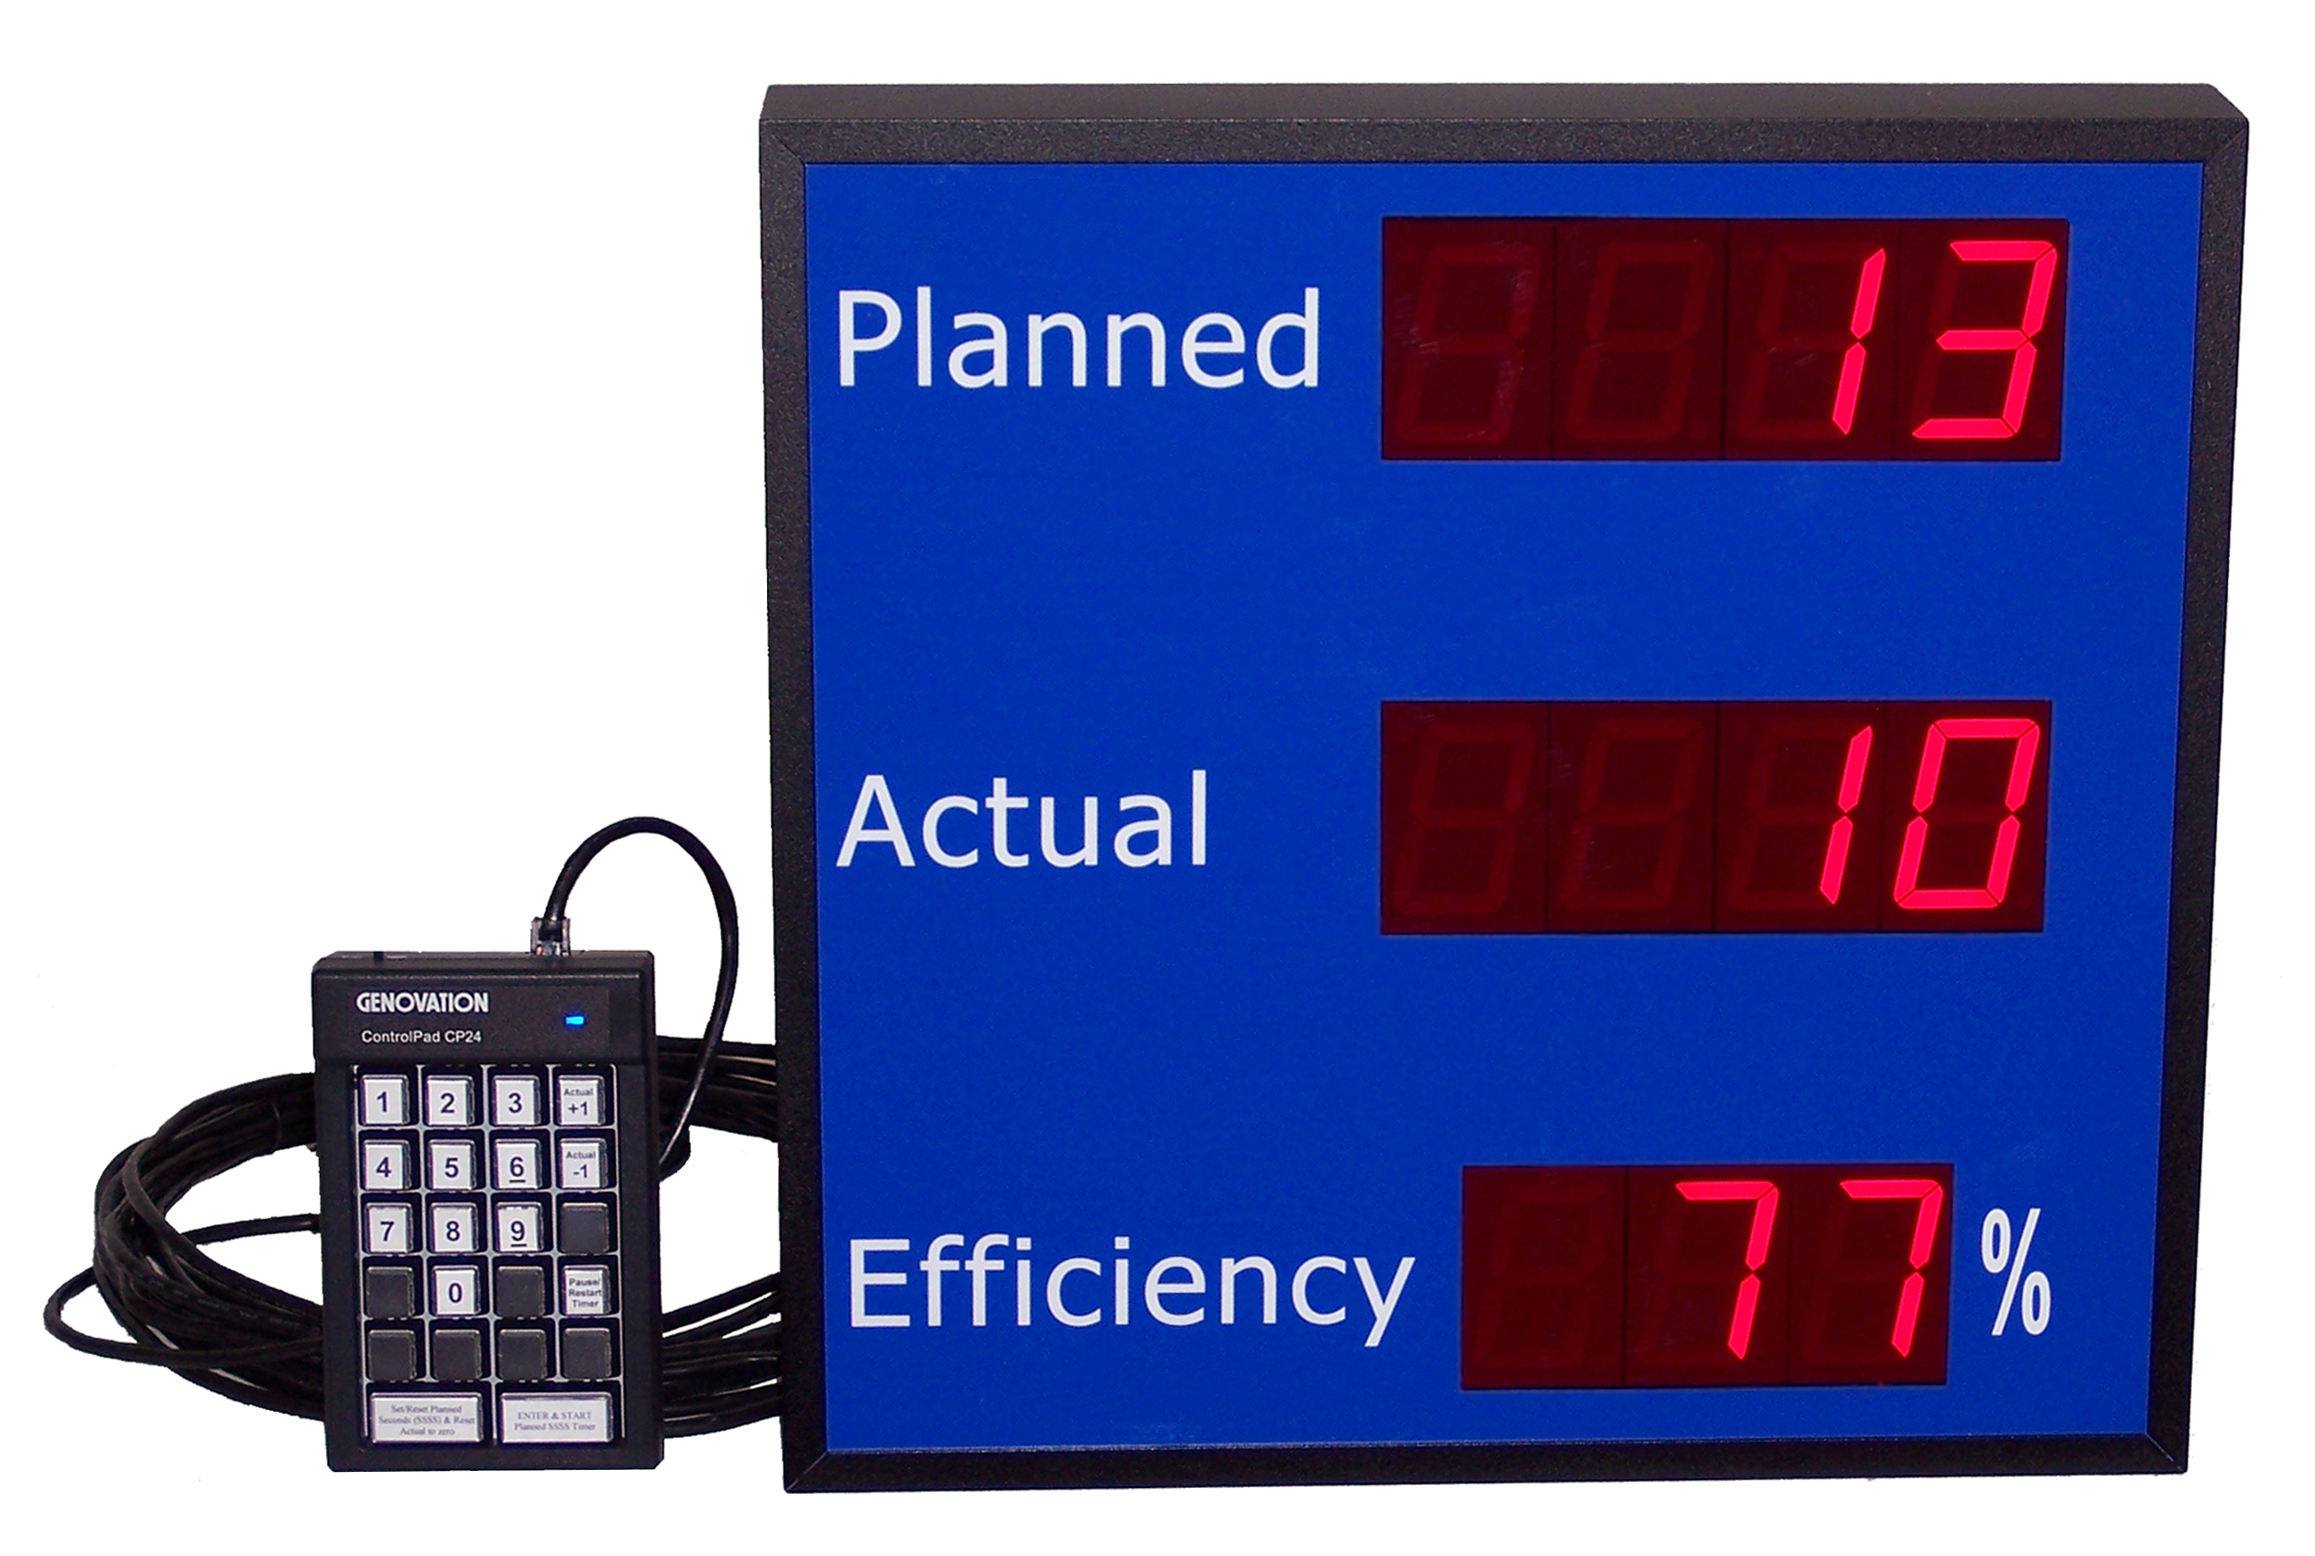 DC-25C-EFF-KEY-PACE-SECONDS-Production-Timer-Counter-Efficiency-2.3-Inch-Digits